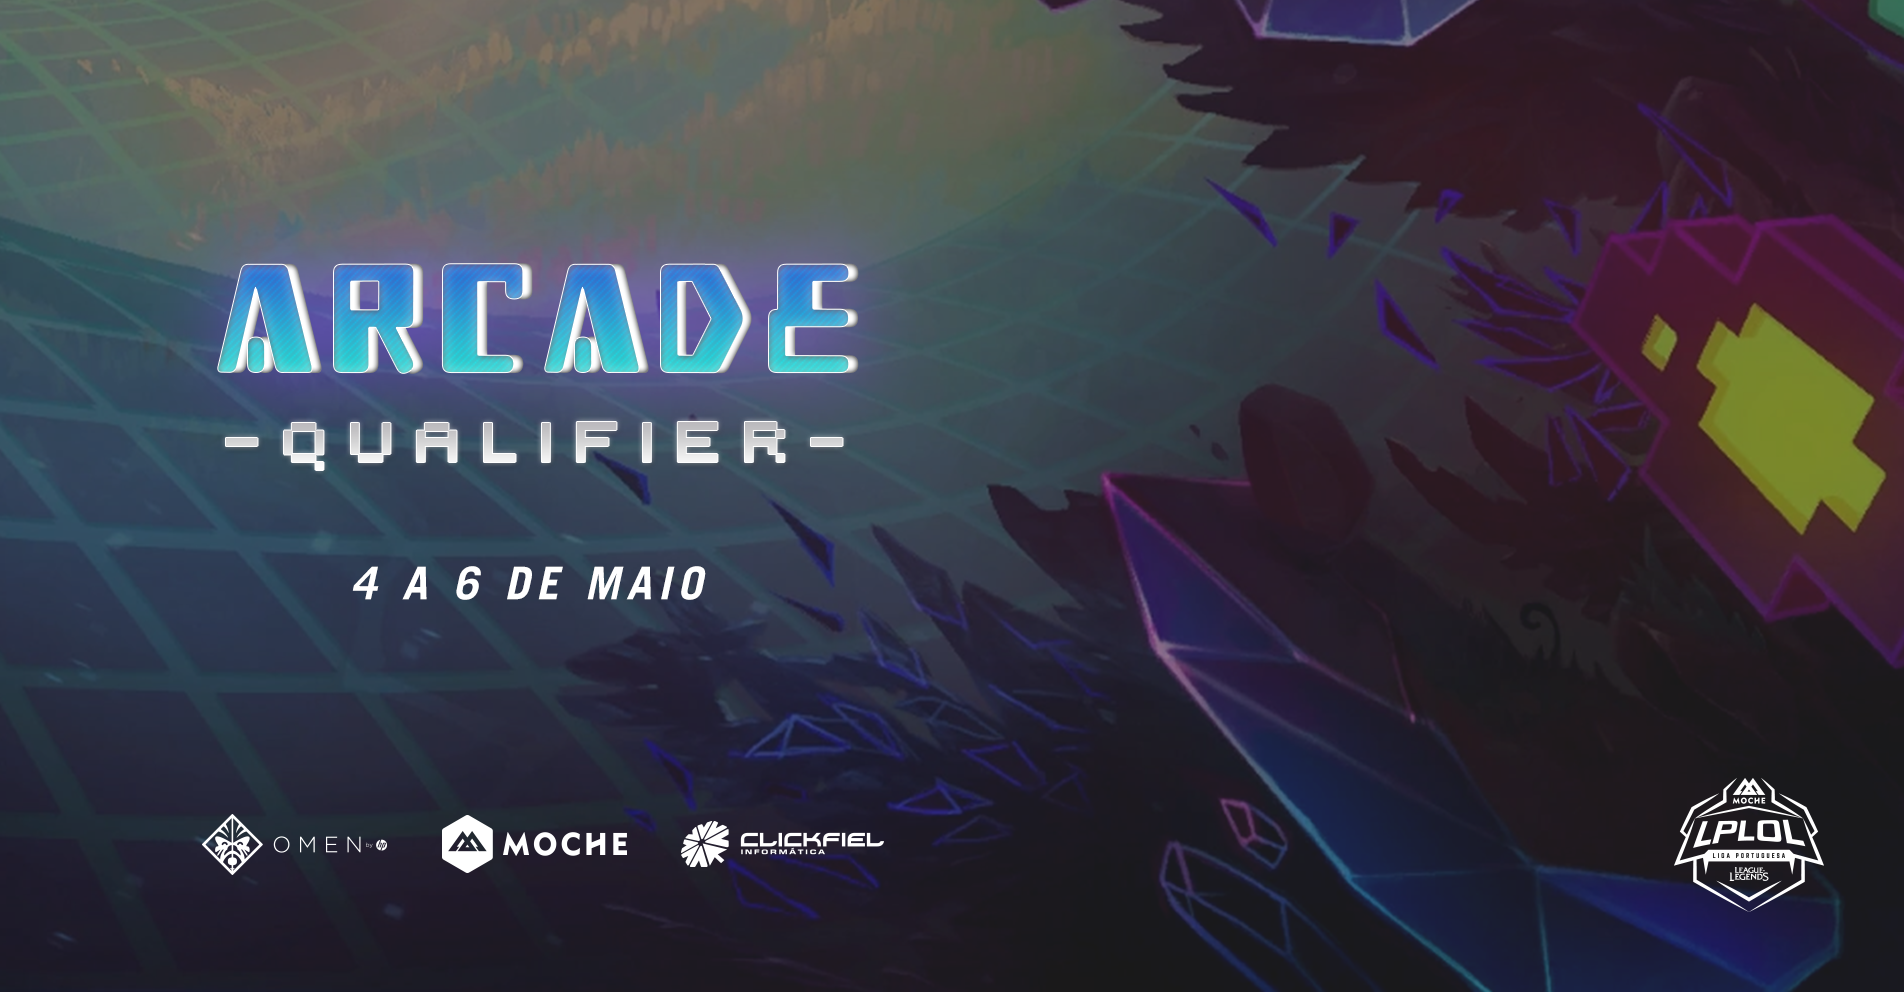 Arcade qualifier news